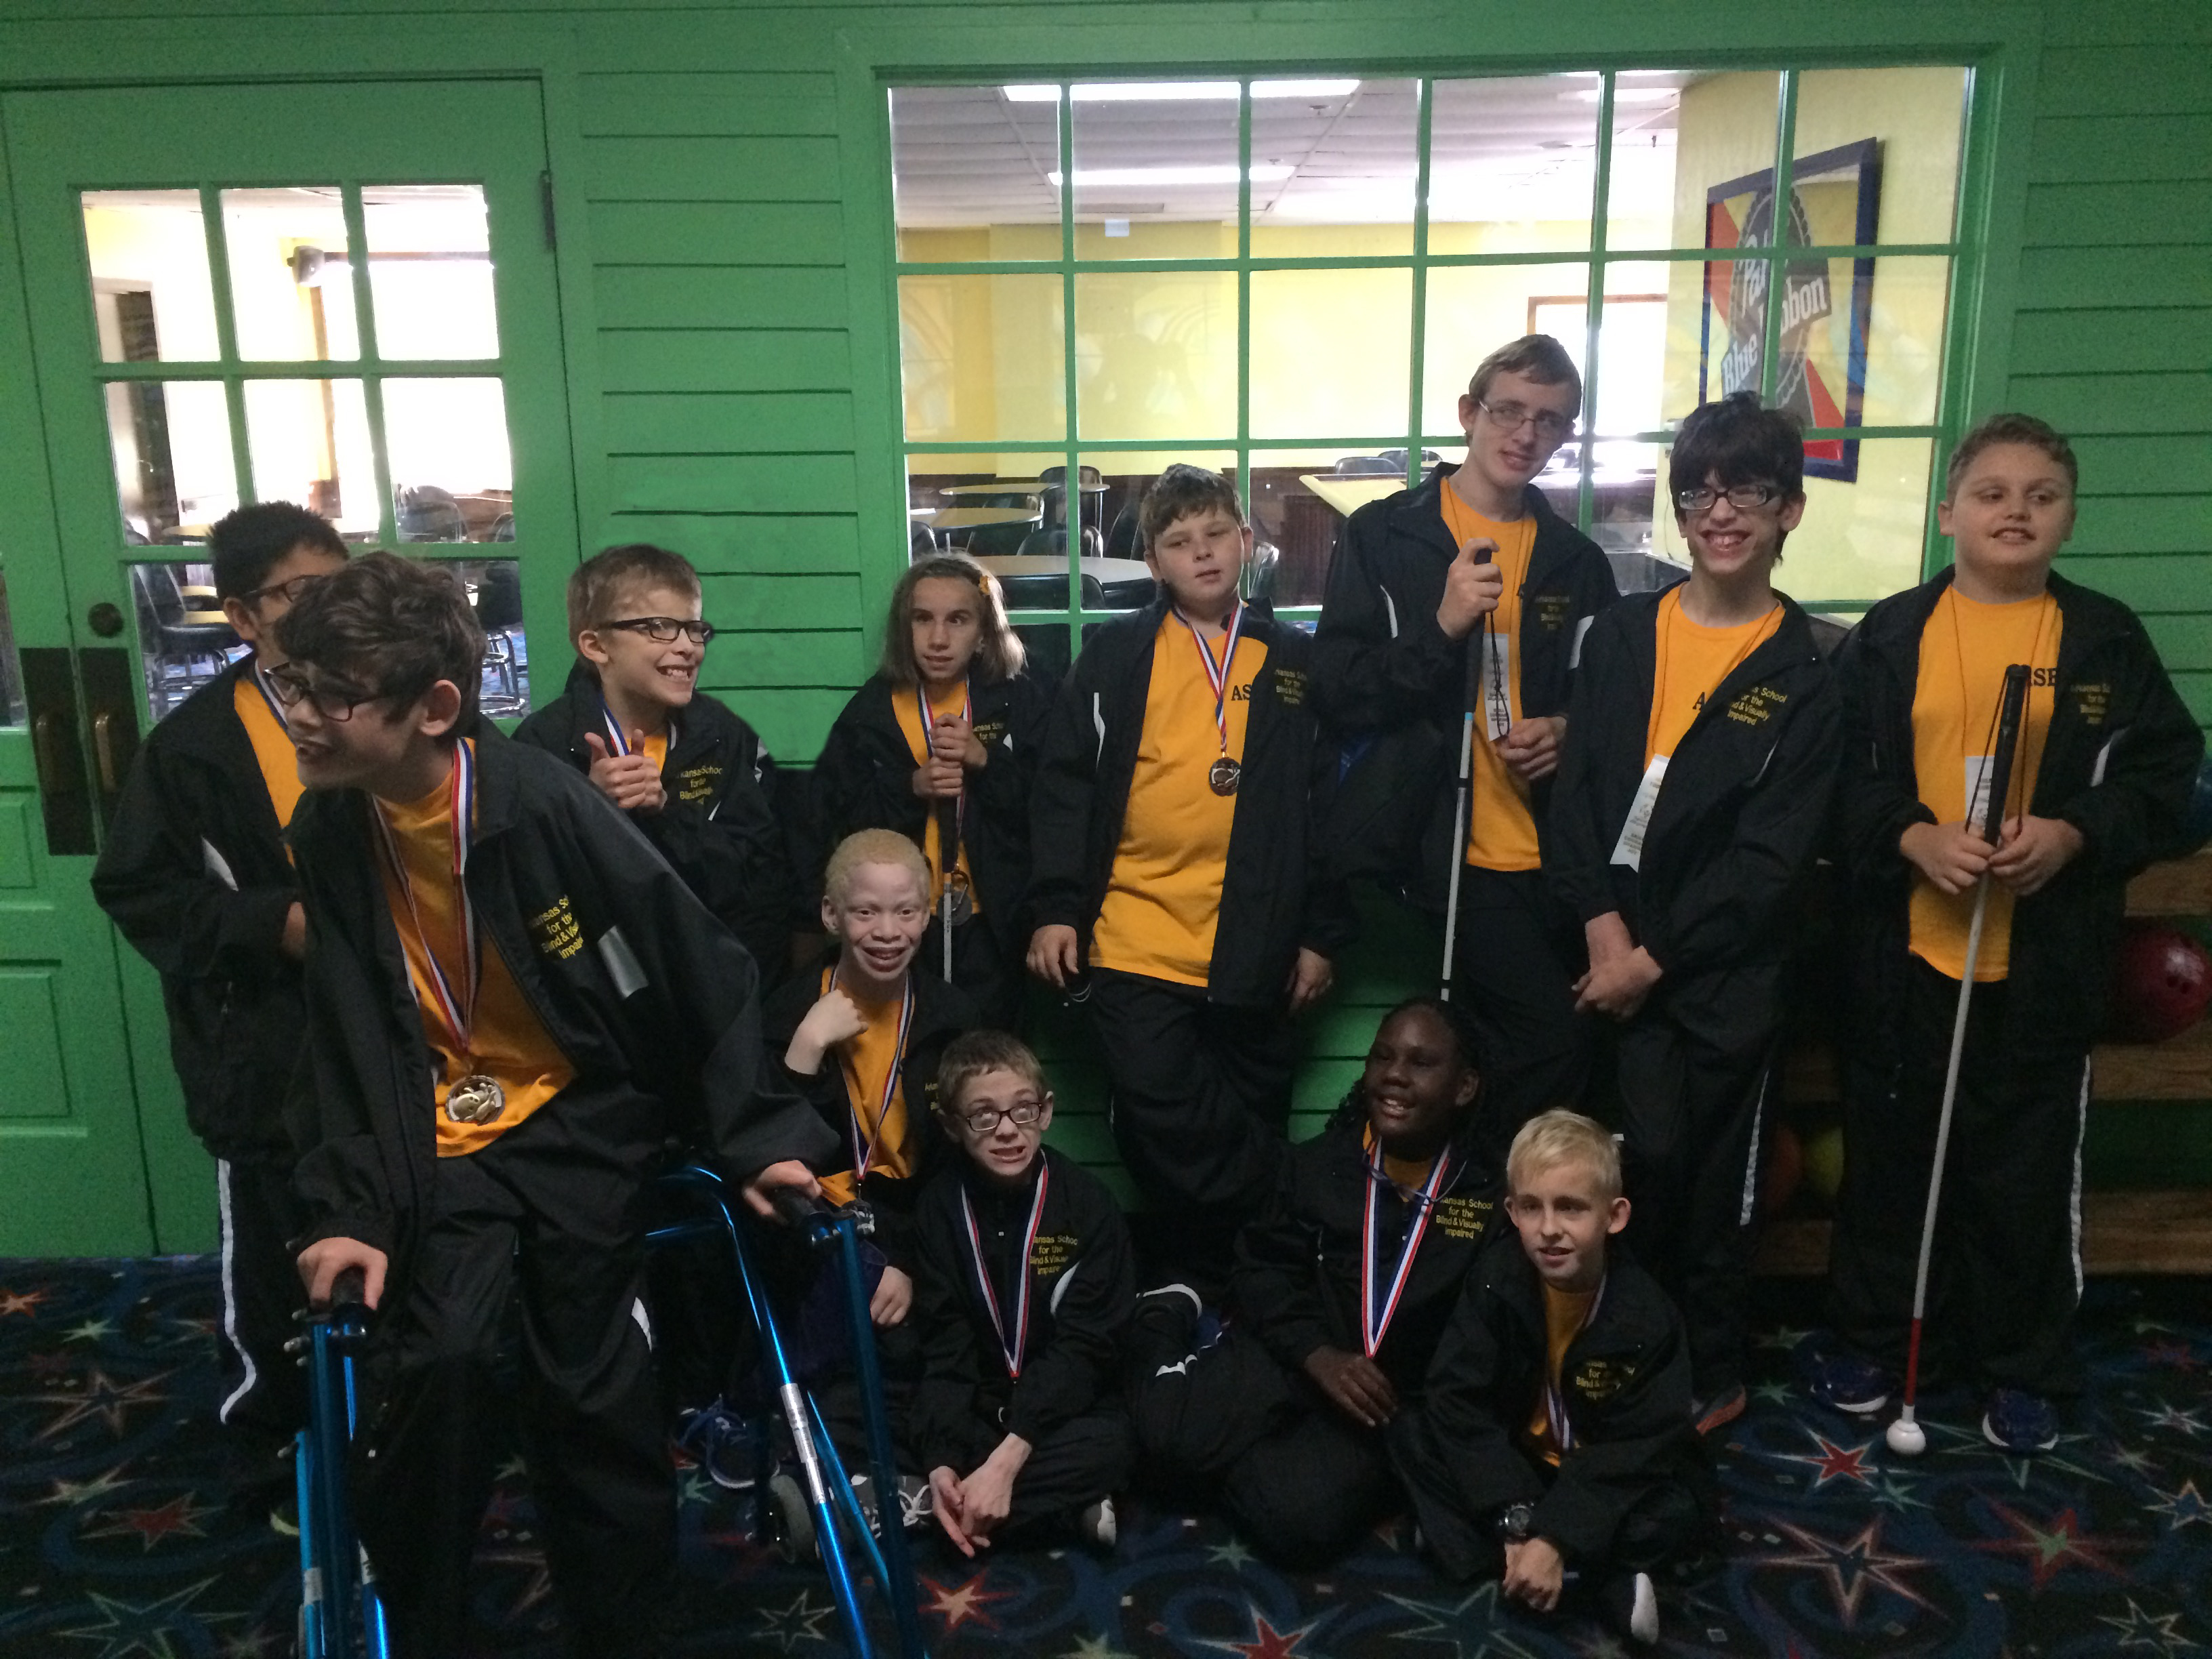 Photo of the 2018 ASBVI Special Olympics Bowling Team